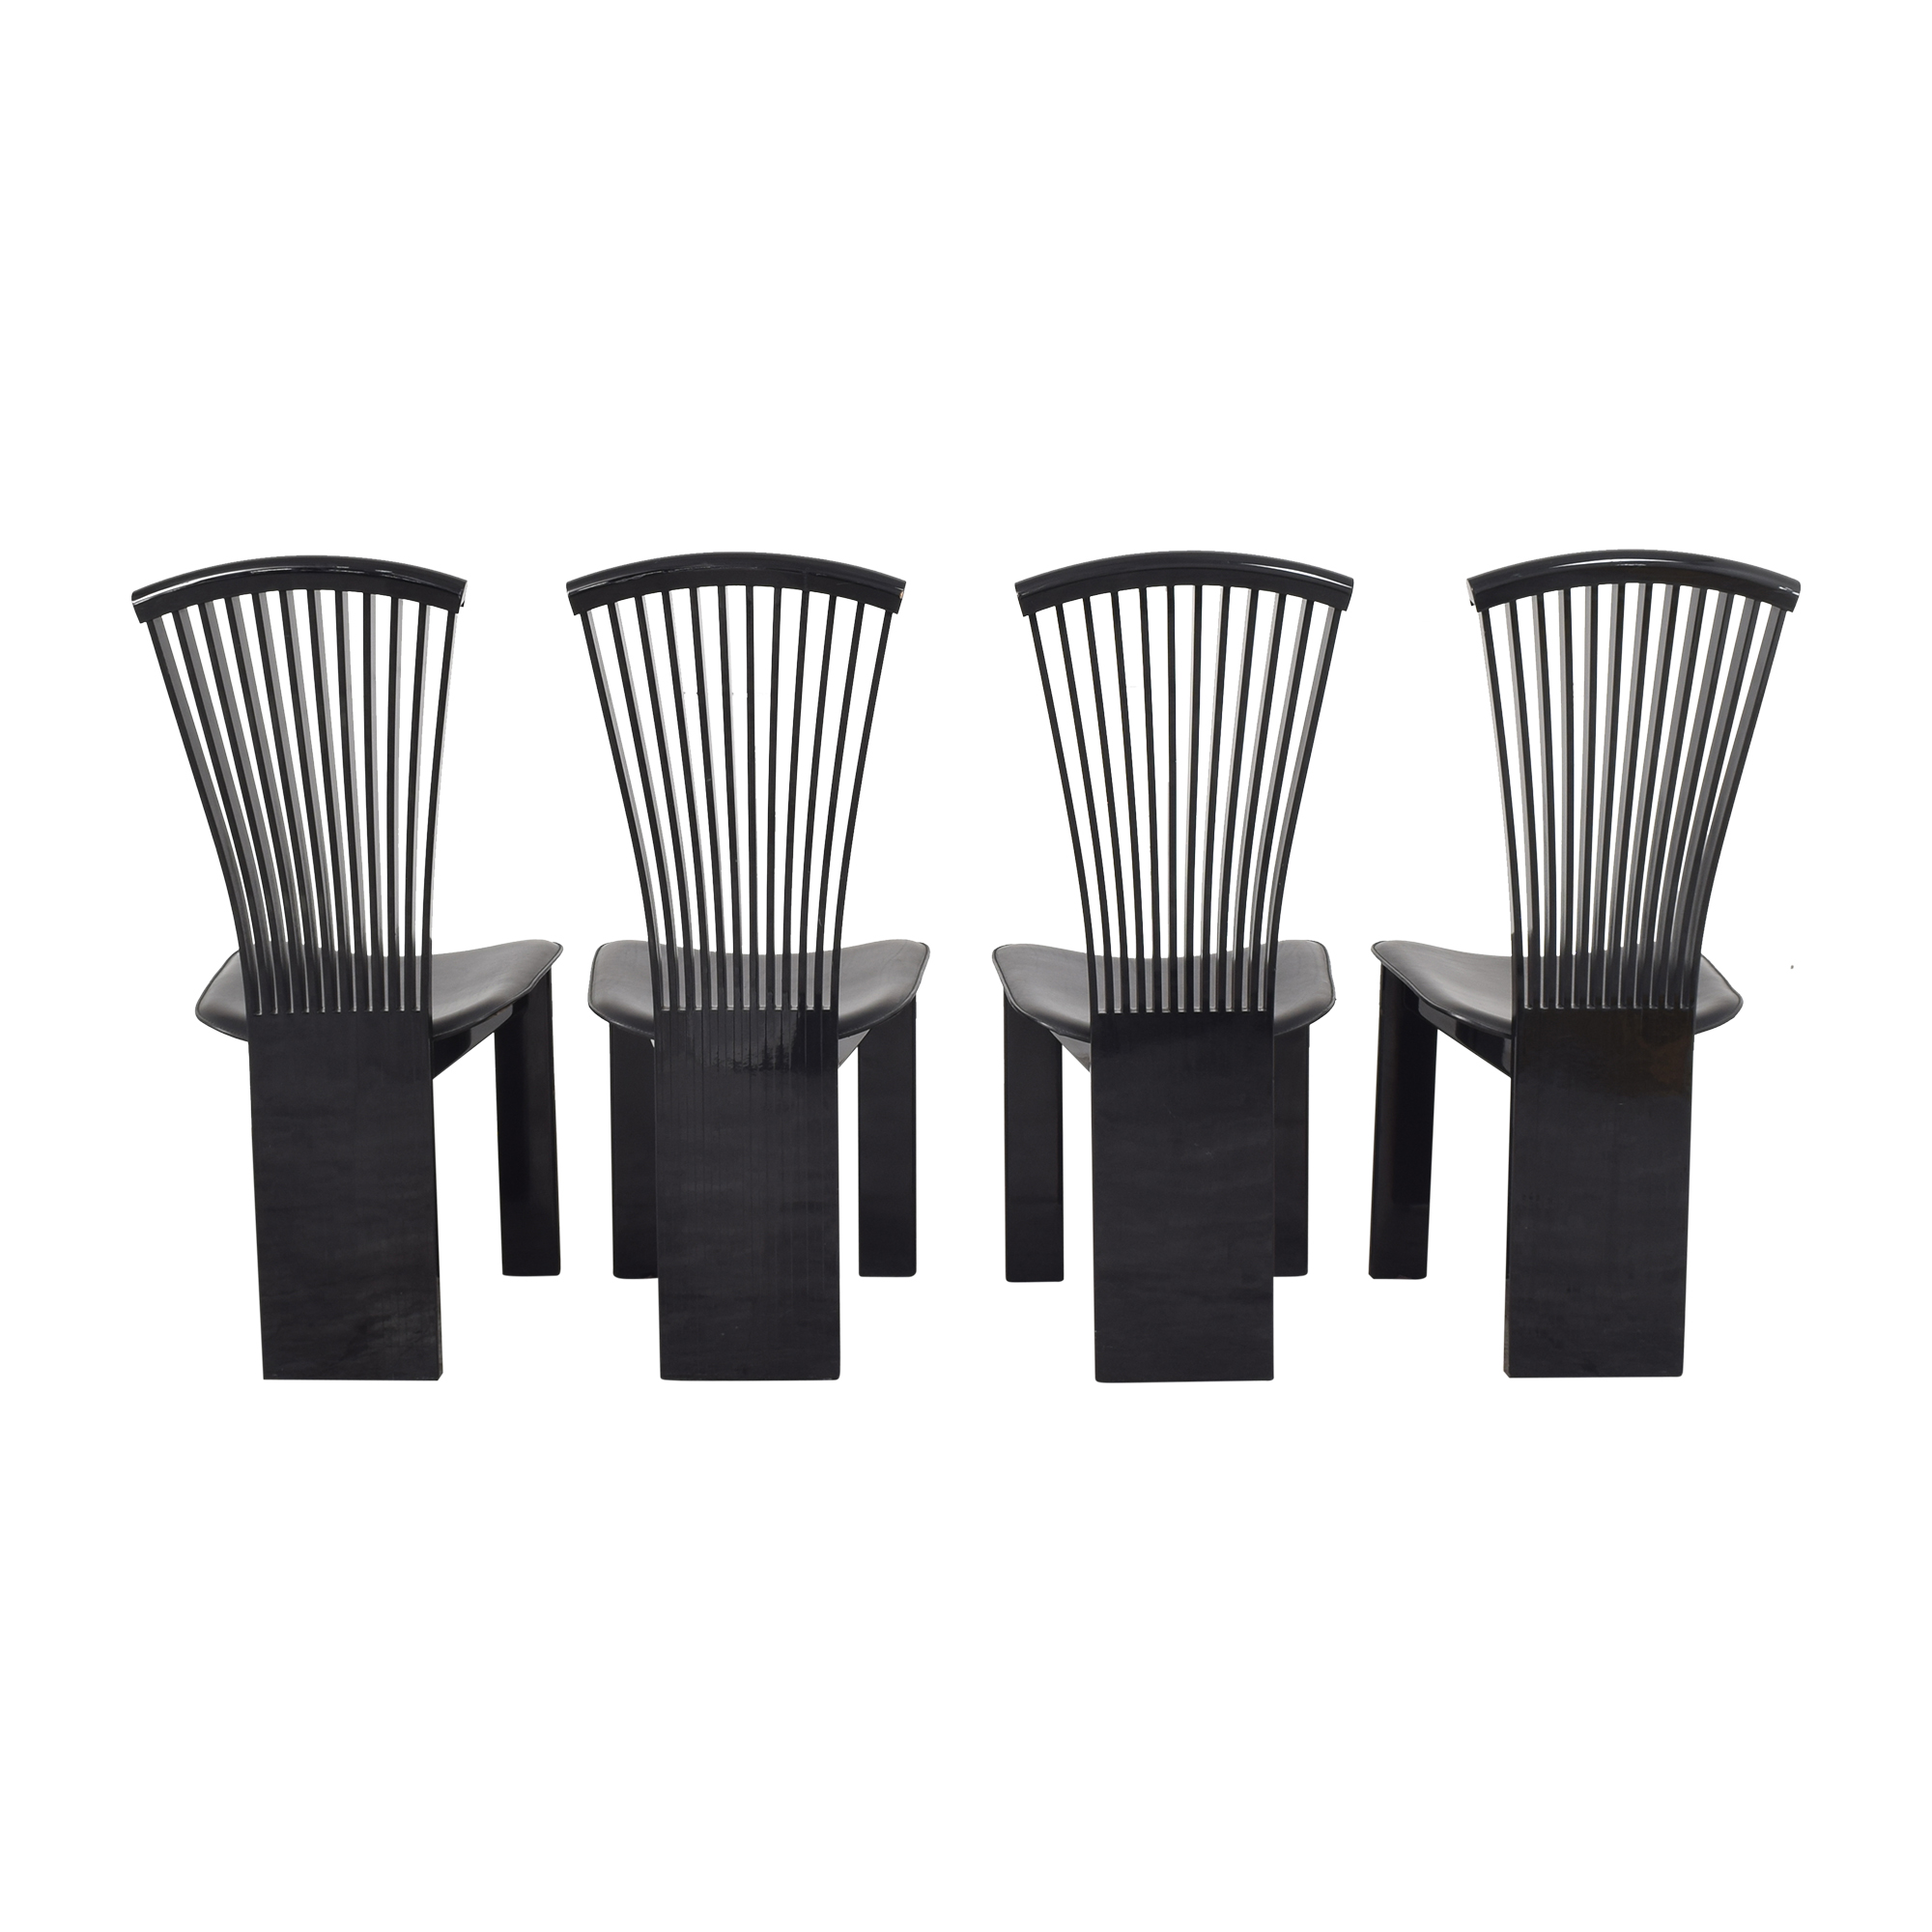 Pietro Costantini Pietro Costantini High Back Dining Chairs second hand